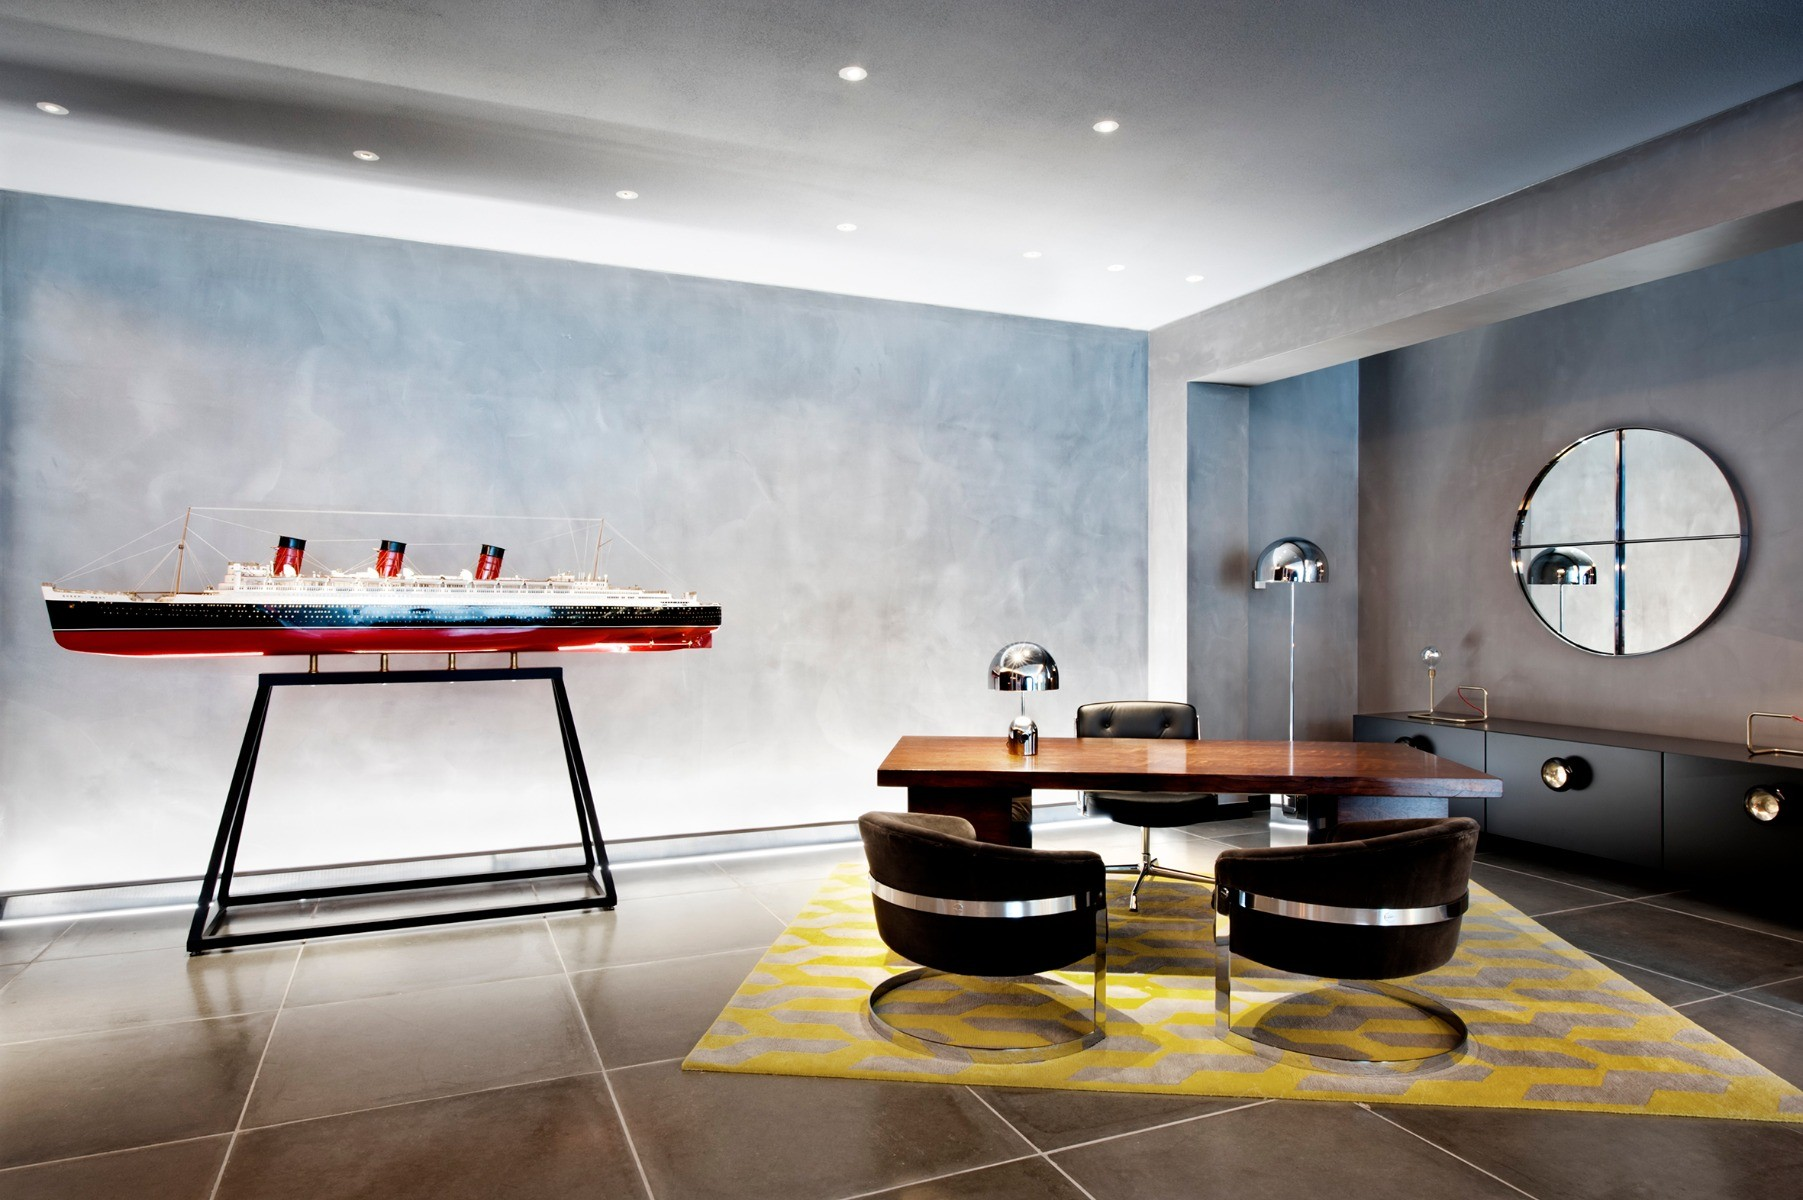 Mondrian Hotel in London, featuring a Bell table and floor lights. Interiors by Tom Dixon's Design Research Studio.